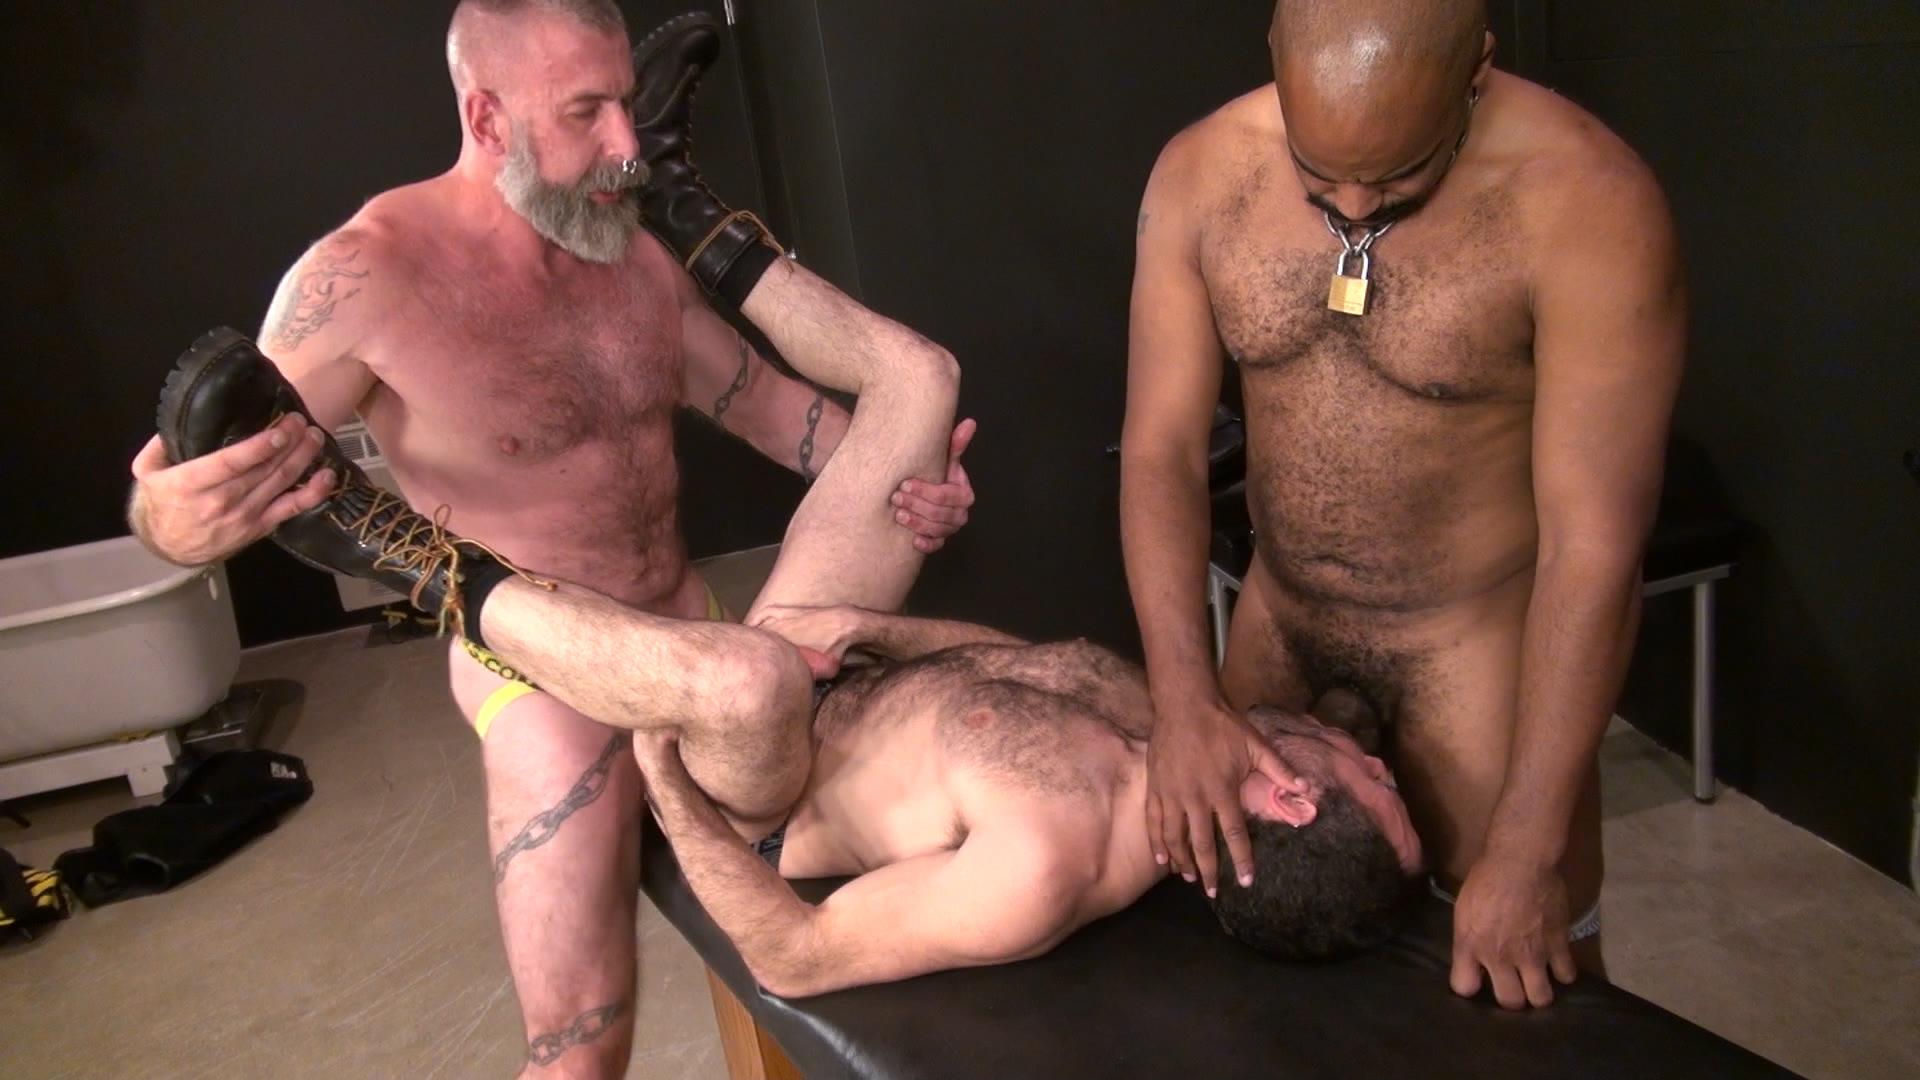 Raw-and-Rough-Jake-Wetmore-and-Dusty-Williams-and-Kid-Satyr-Bareback-Taking-Raw-Daddy-Loads-Cum-Amateur-Gay-Porn-03.jpg